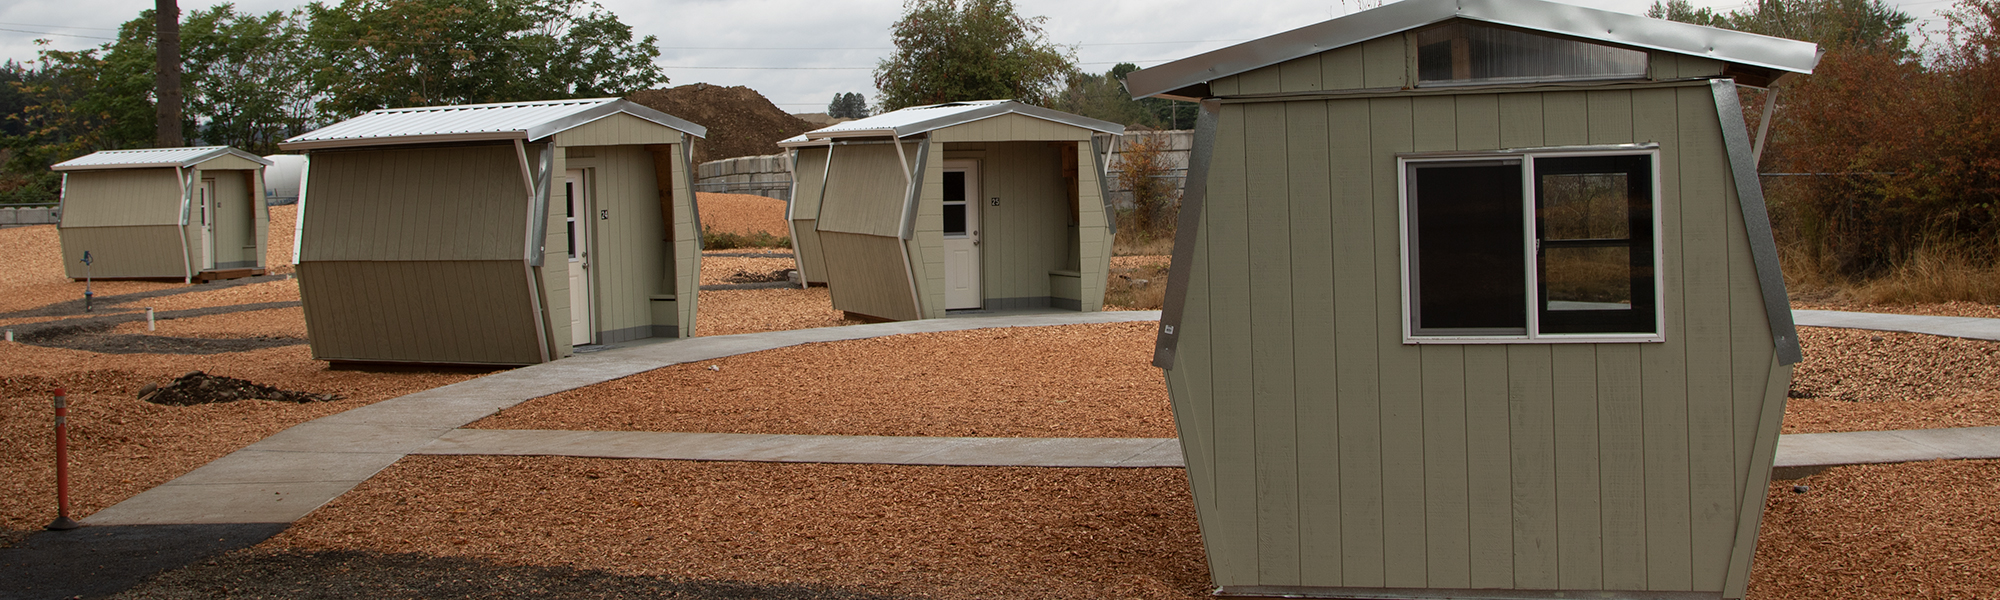 Veteran's Village pods